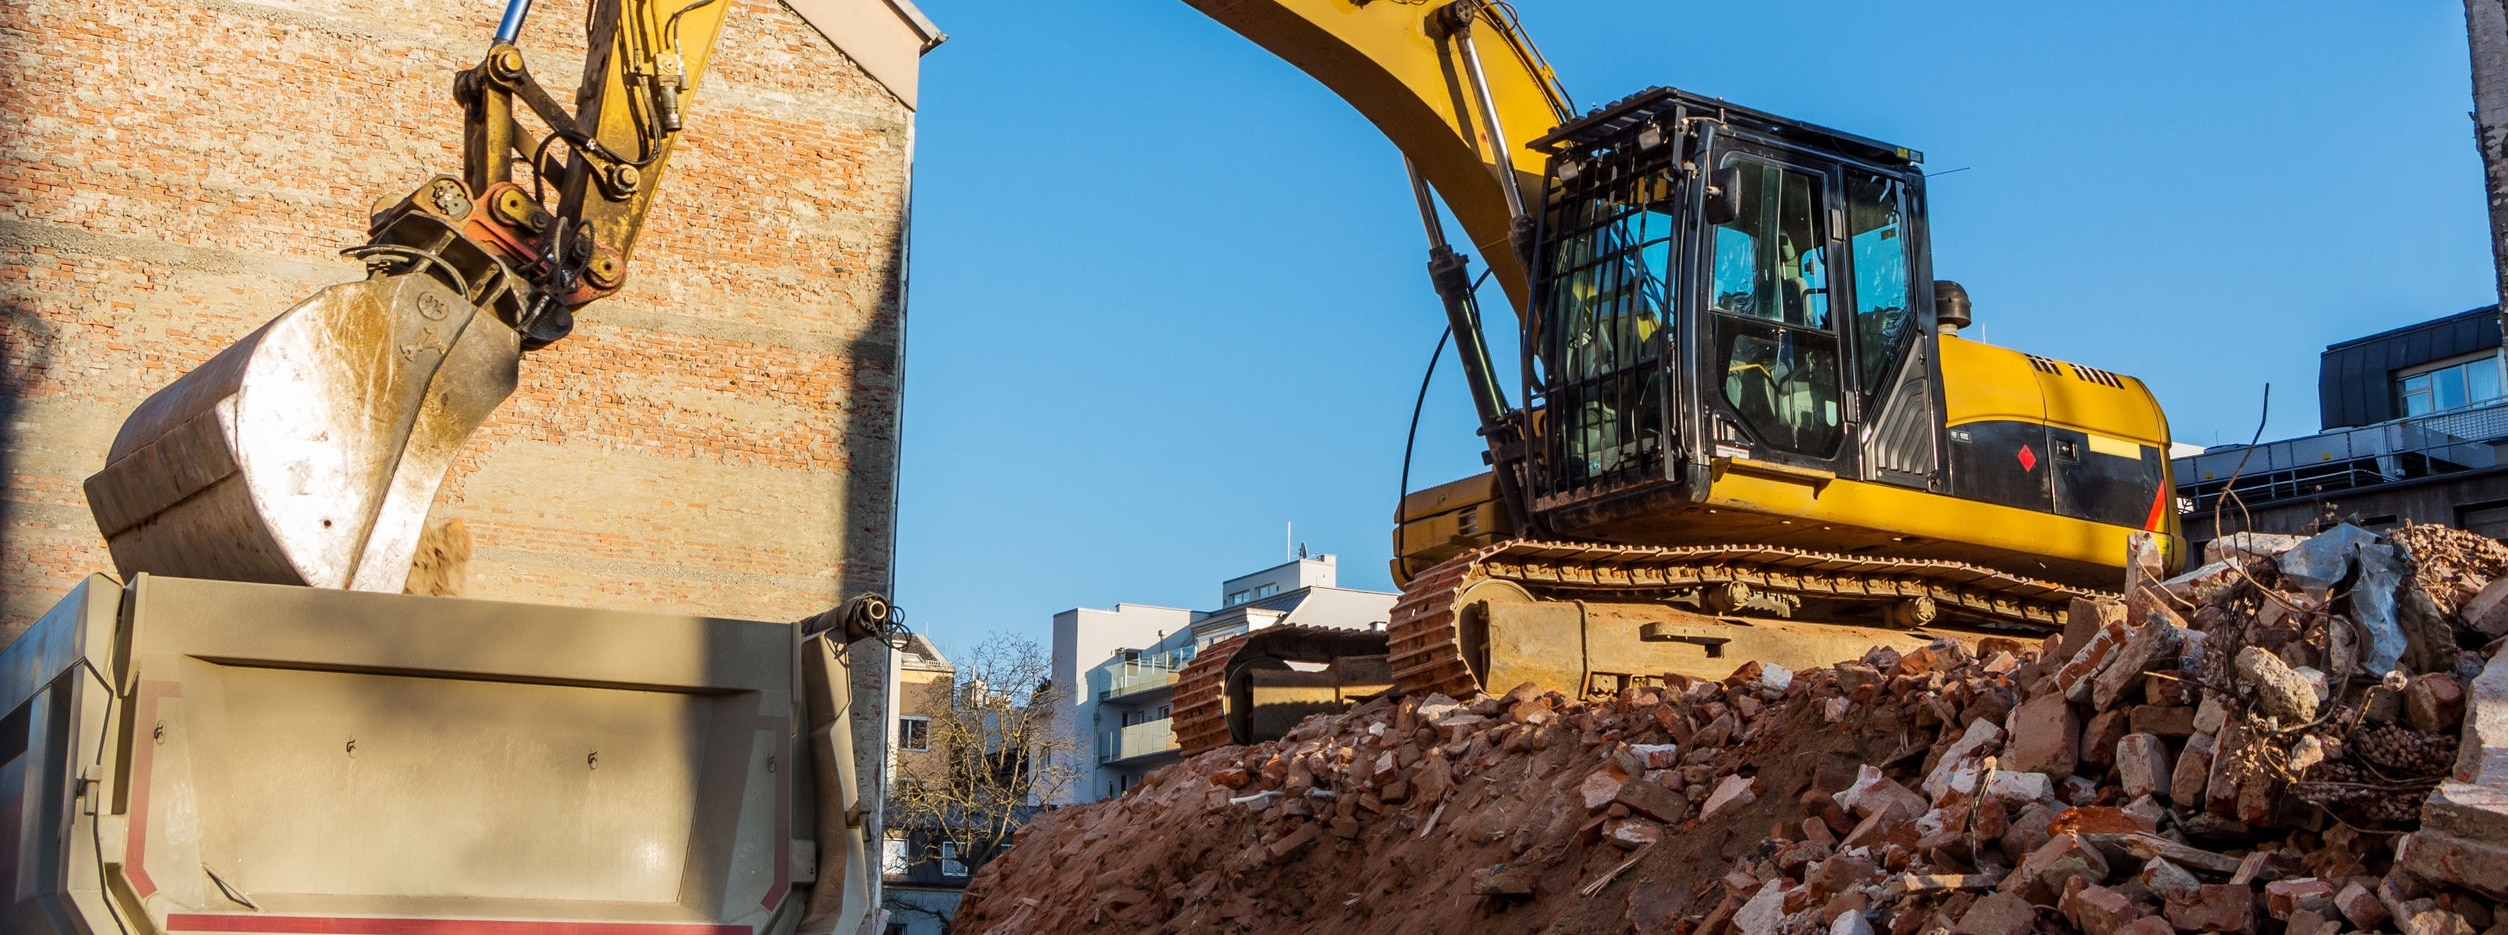 Excavator on a construction site during the demolition of a building